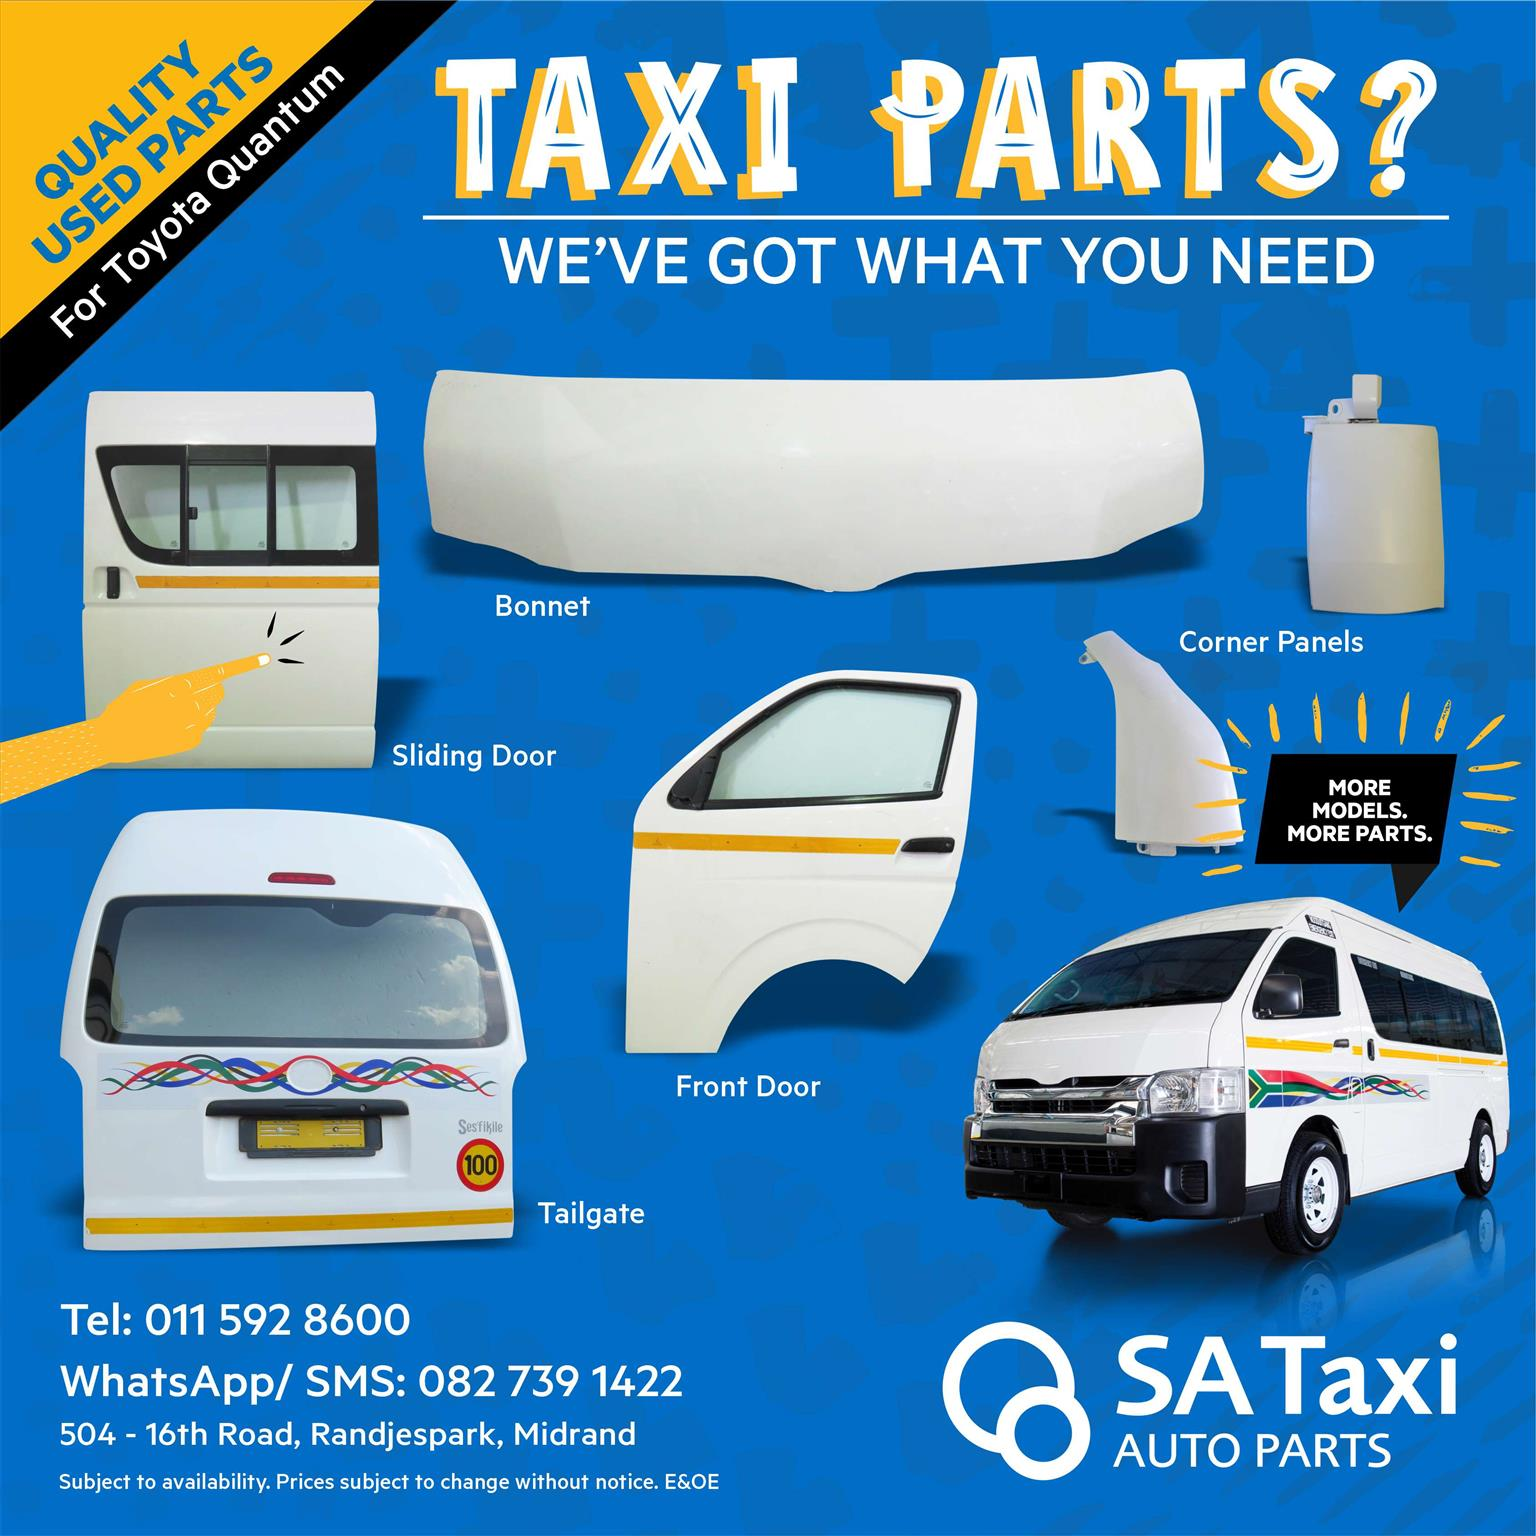 Quality used GEARBOX for Toyota Quantum - SA Taxi Auto Parts